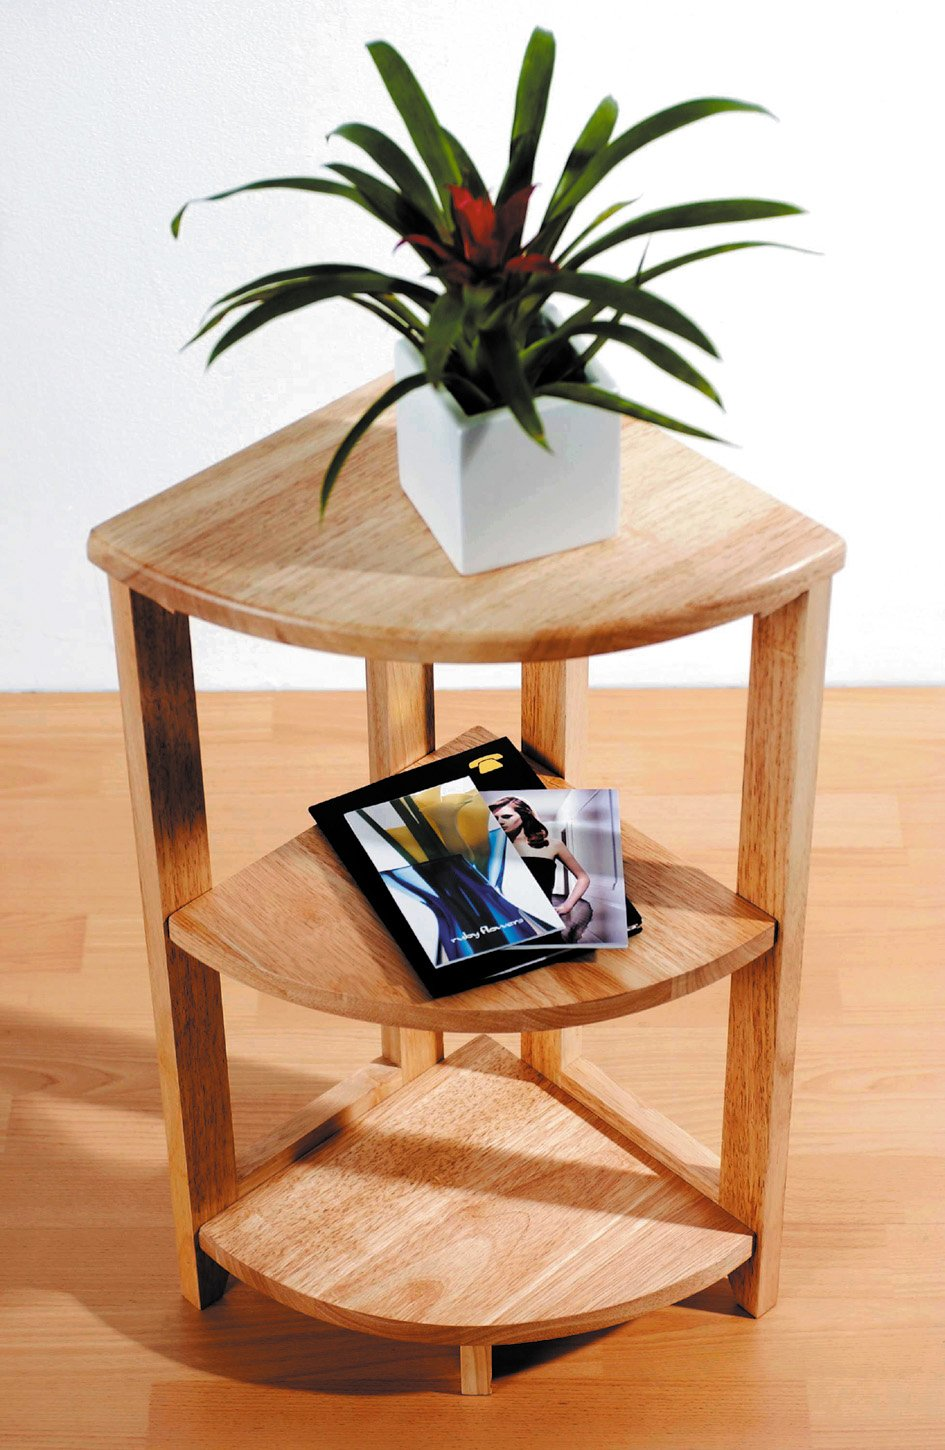 Marvelous 3 Tier Corner Shelf Unit Rubber Wood Home Furniture: Amazon.co.uk: Kitchen  U0026 Home